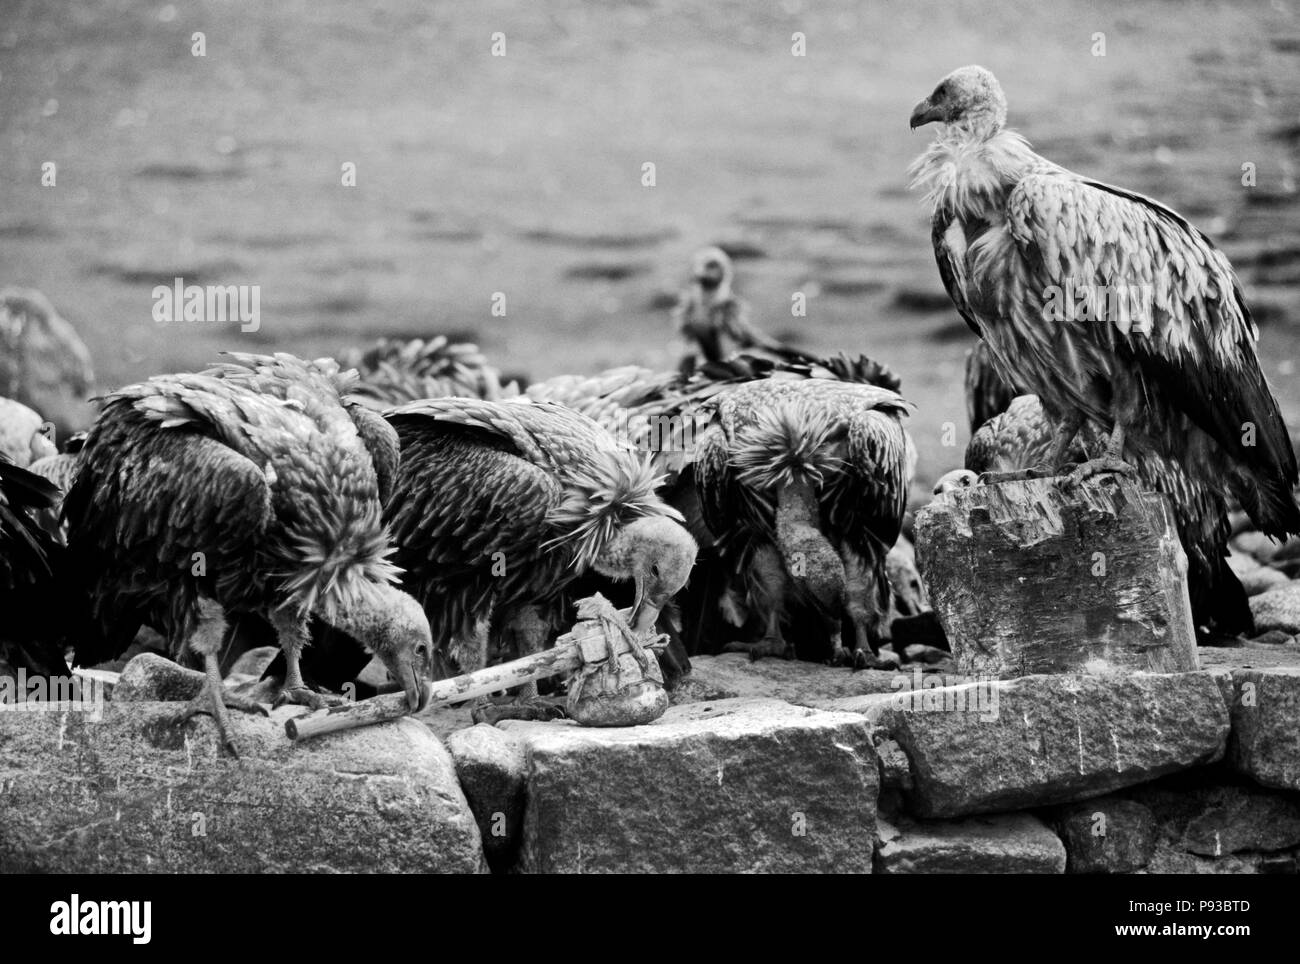 The human dead are ceremonially cut up & fed to the VULTURES by monks at the SKY BURIAL GROUNDS - DRIGUNG MONASTERY, TIBET - Stock Image